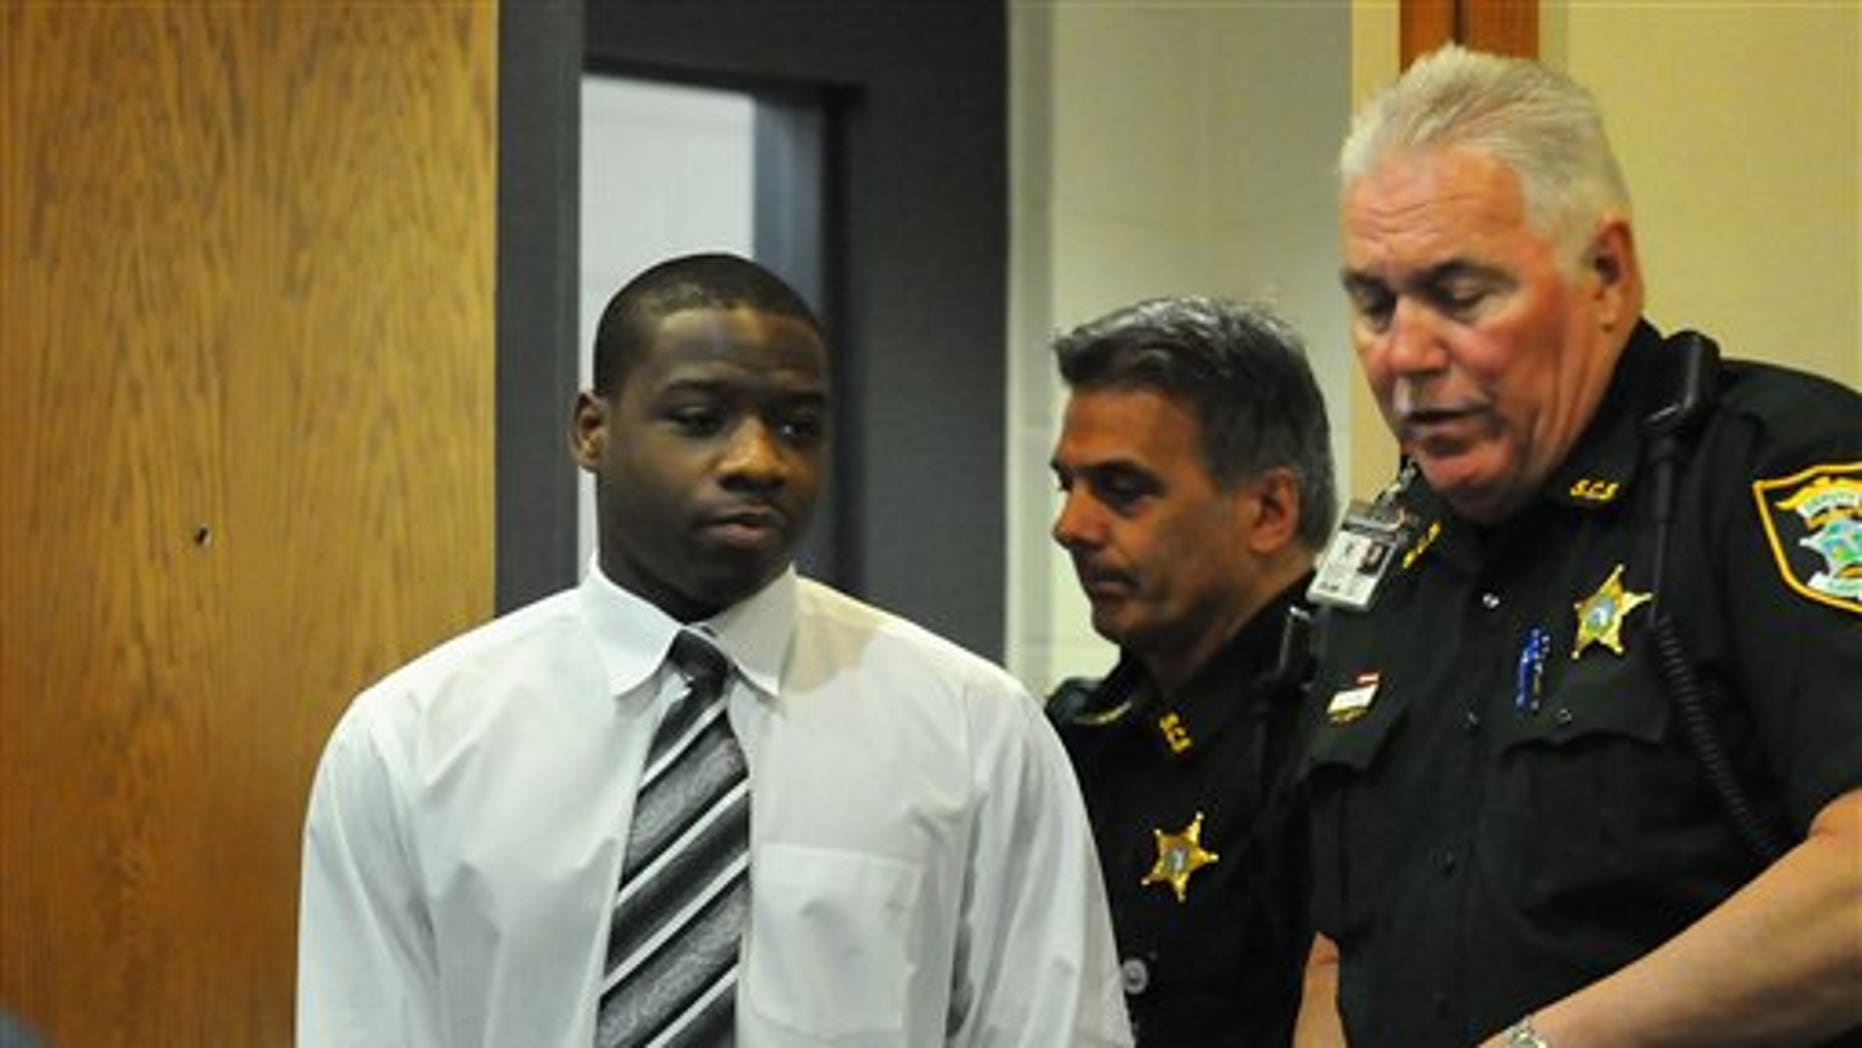 March 26: Shawn Tyson enters the court room on during the third day of his murder trial in Sarasota County Court in Sarasota, Fla.